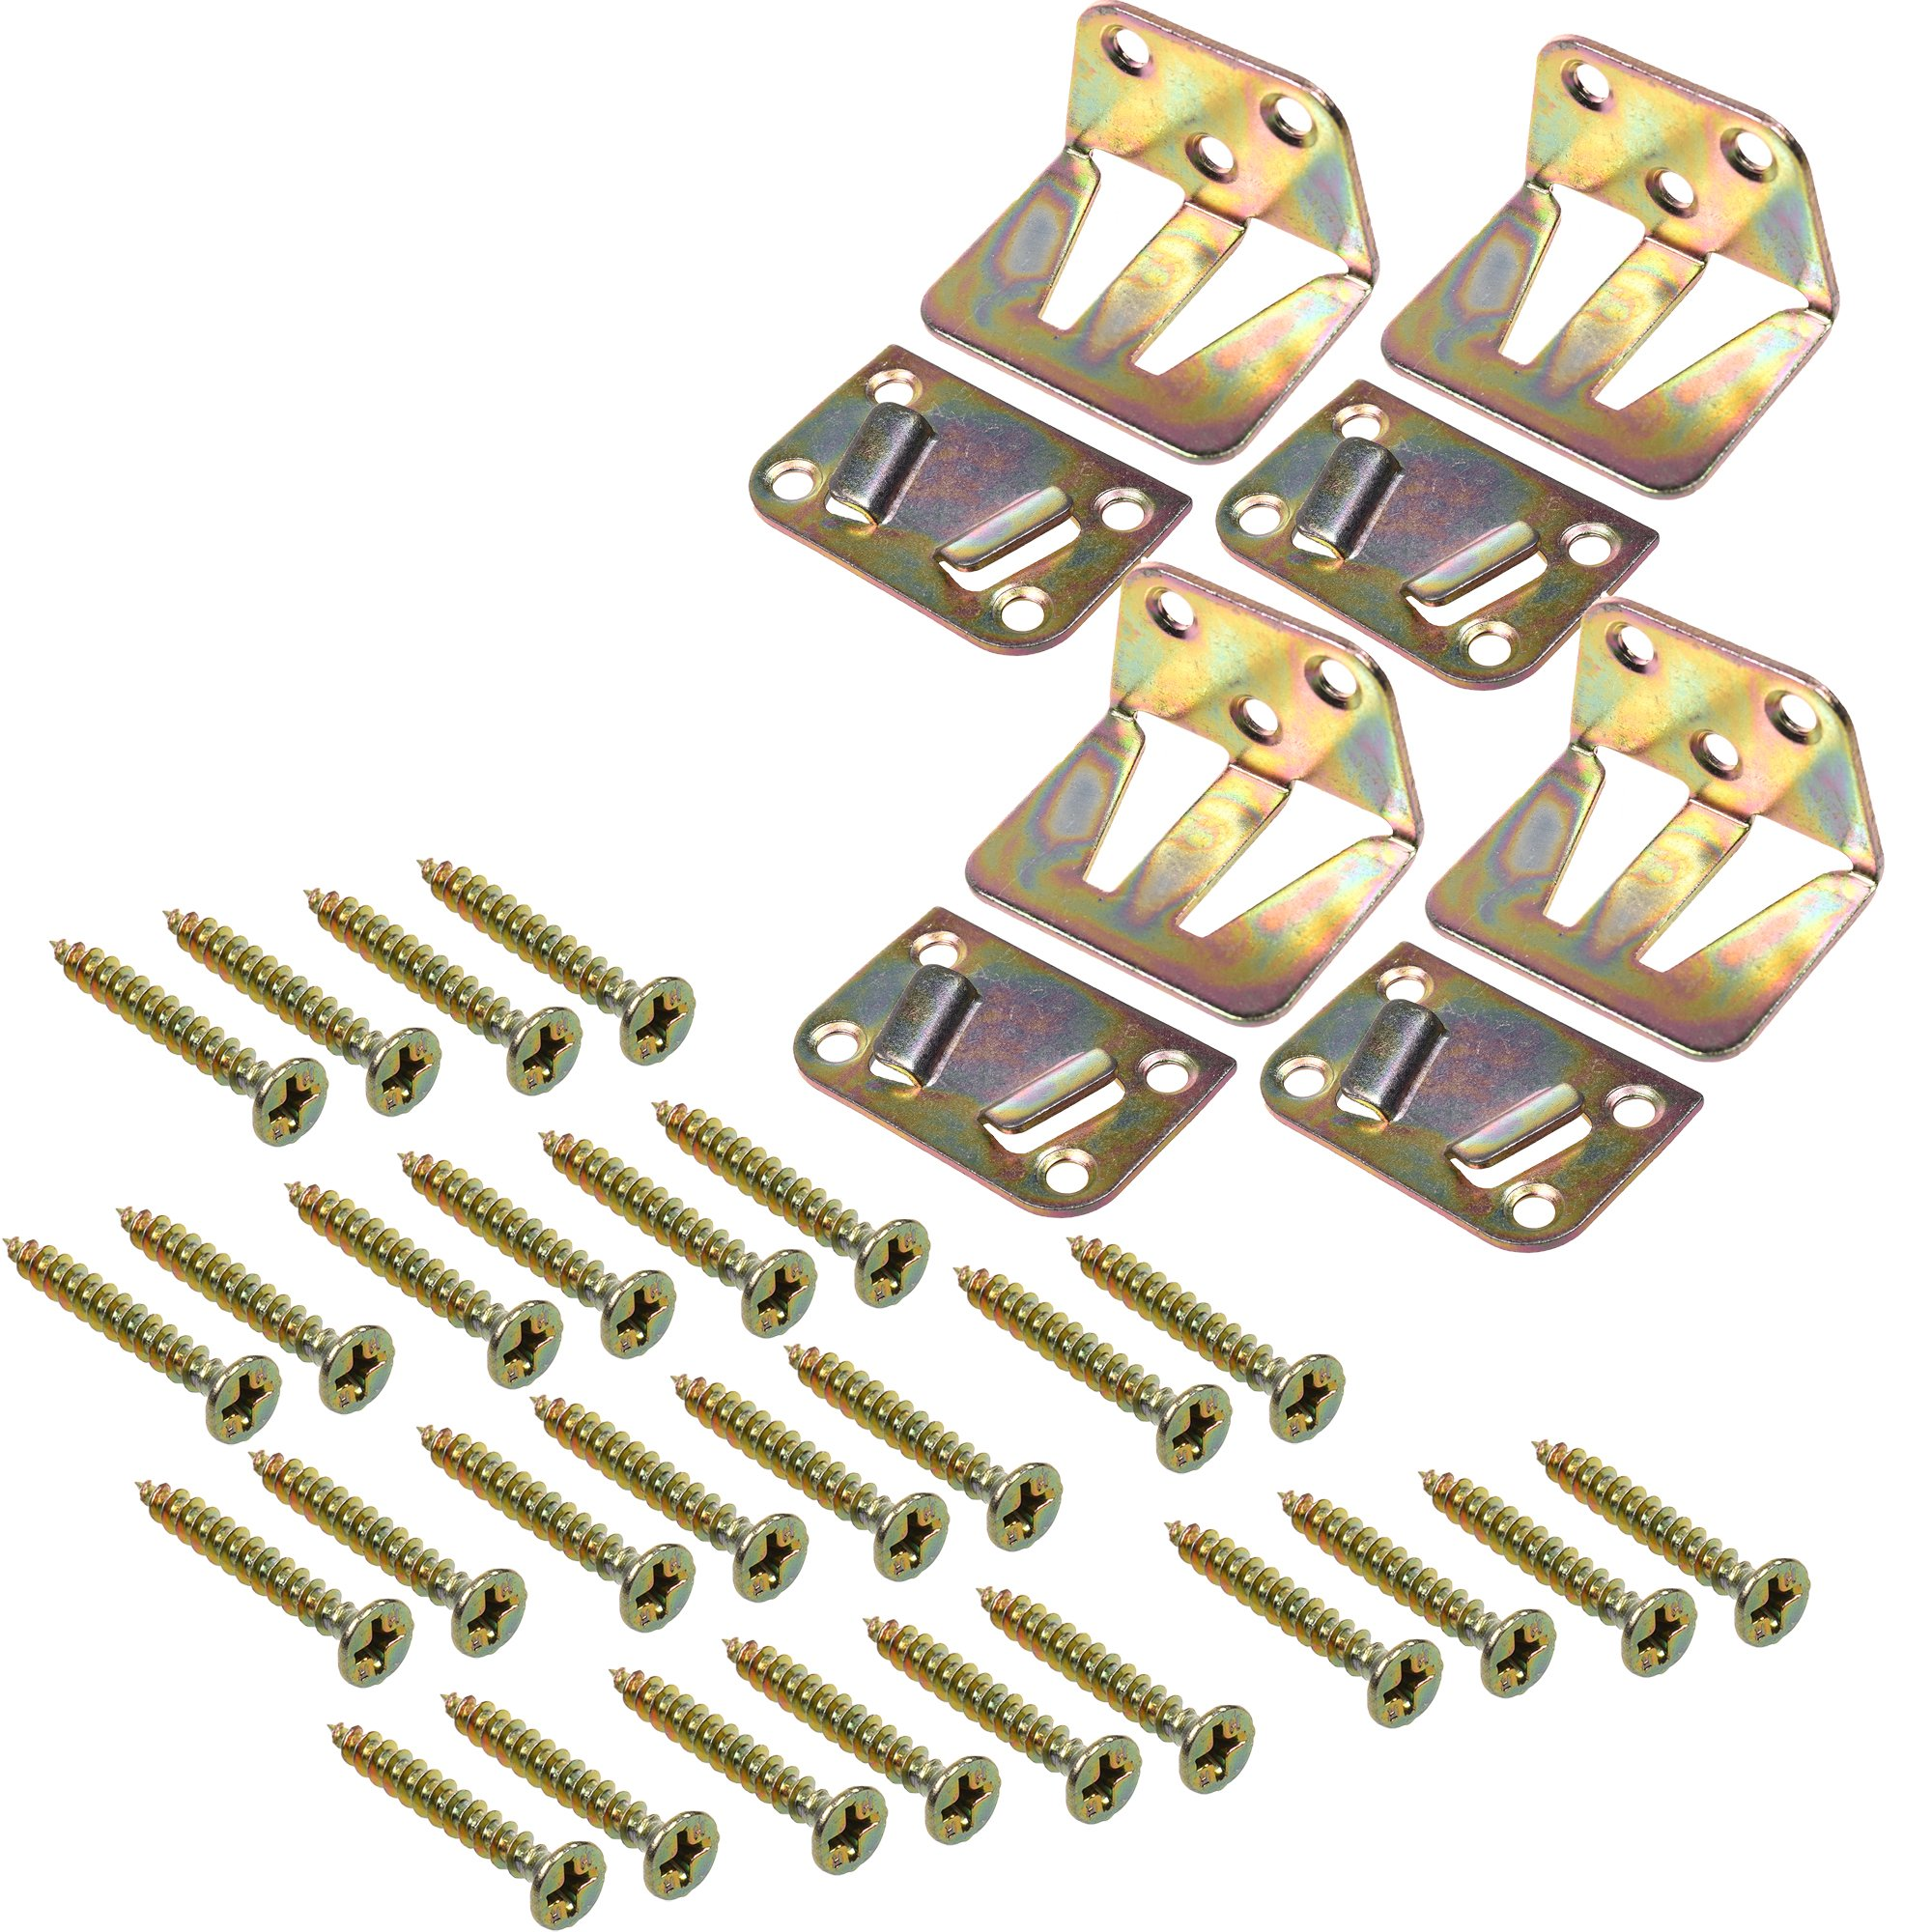 BCP 4 Sets Wood Bed Mattress Support Metal Fastener, Screw Included by BCP (Image #1)